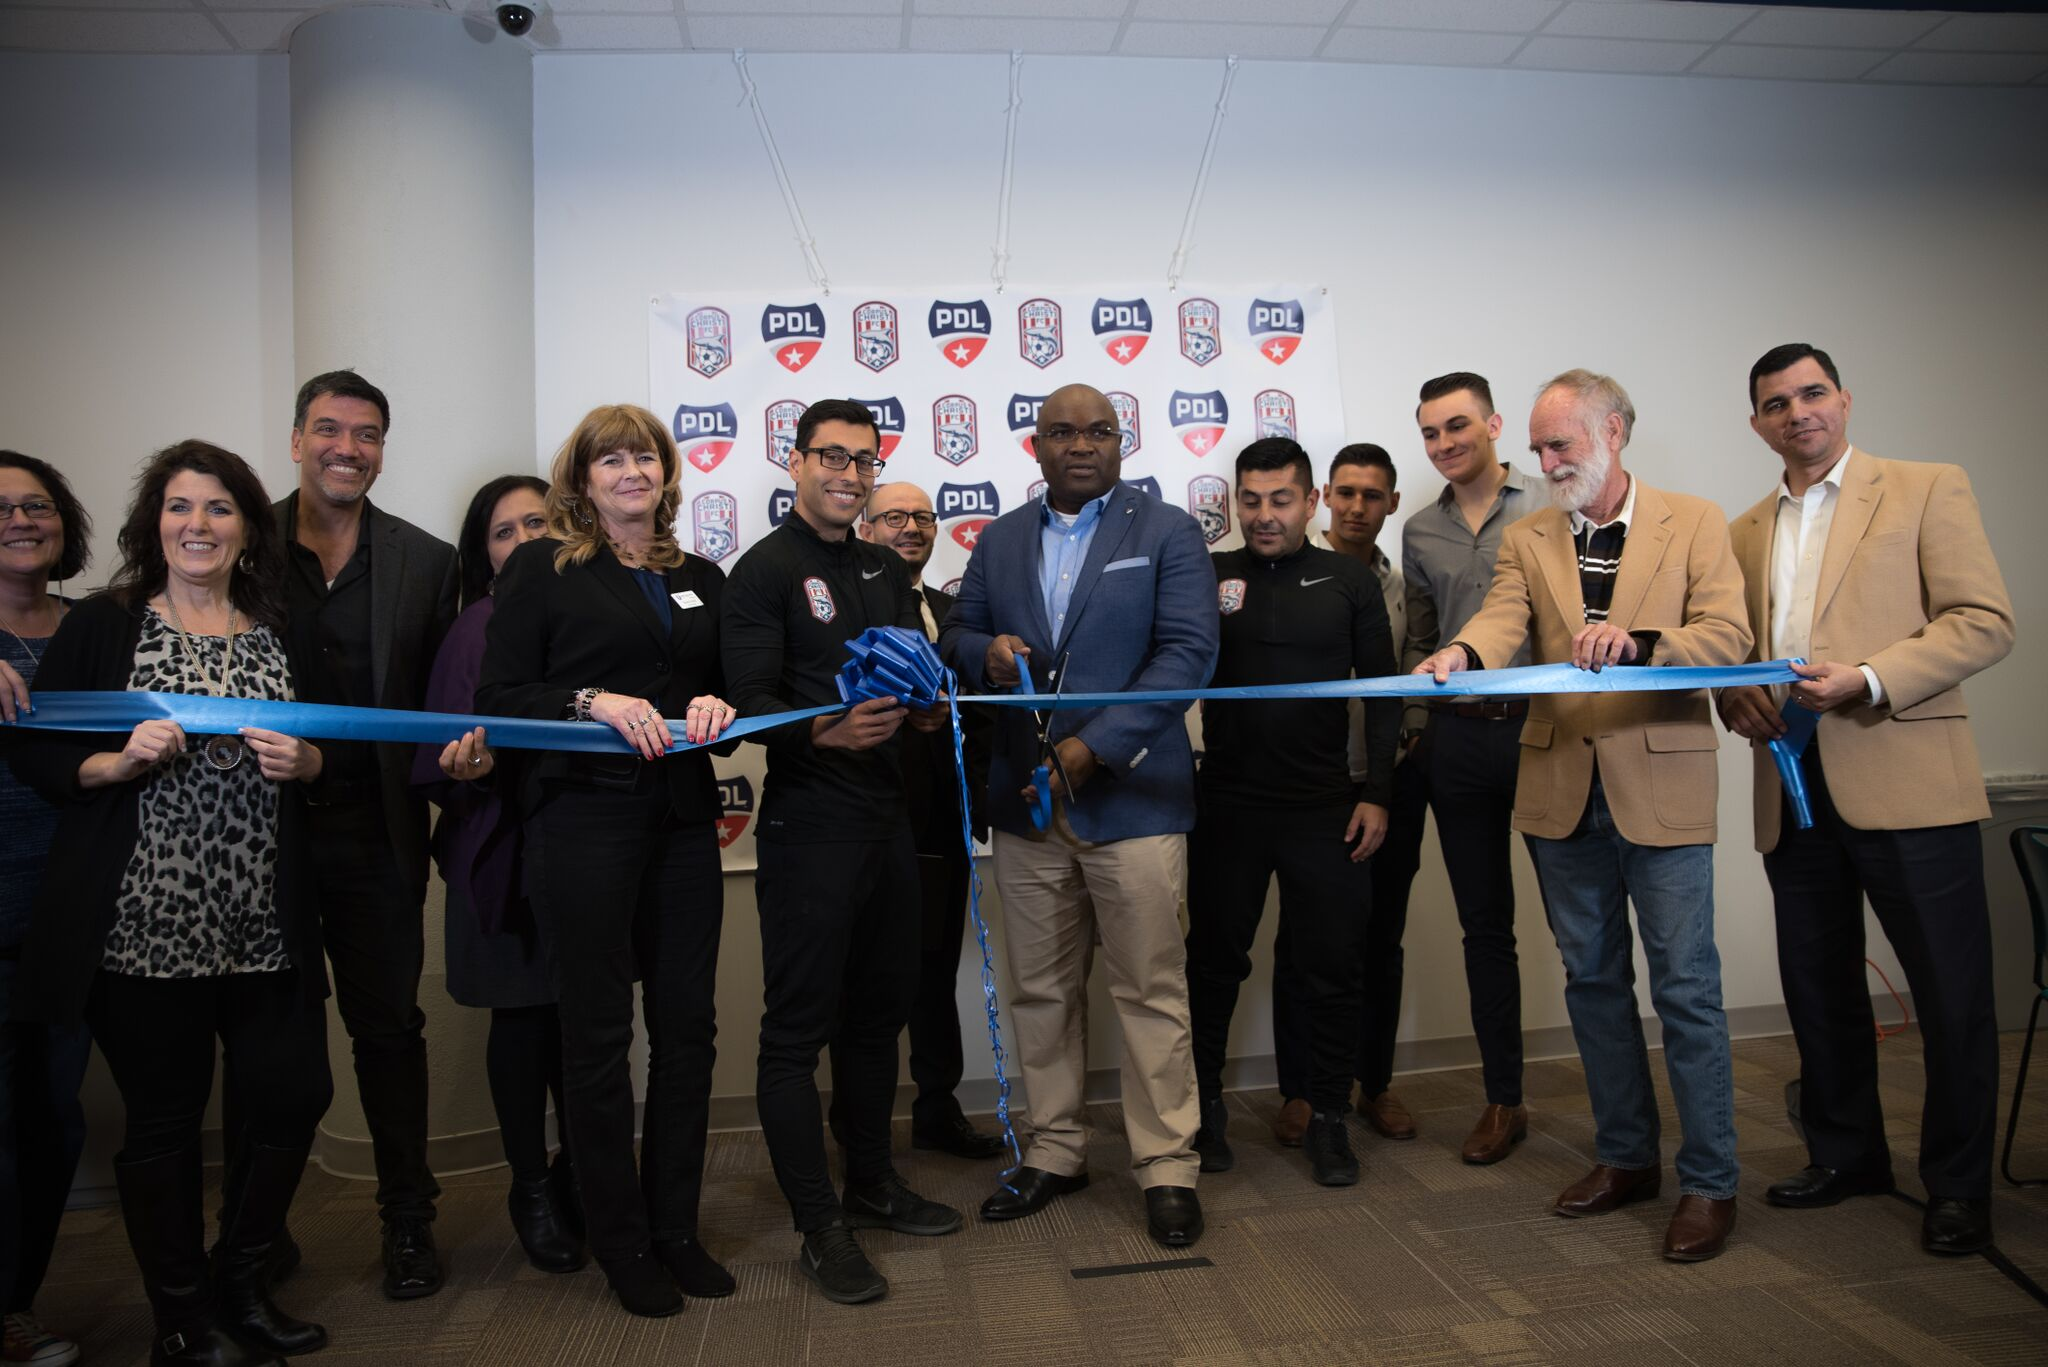 Corpus Christi FC Hosts Its Official Launching and Ribbon Cutting Ceremony